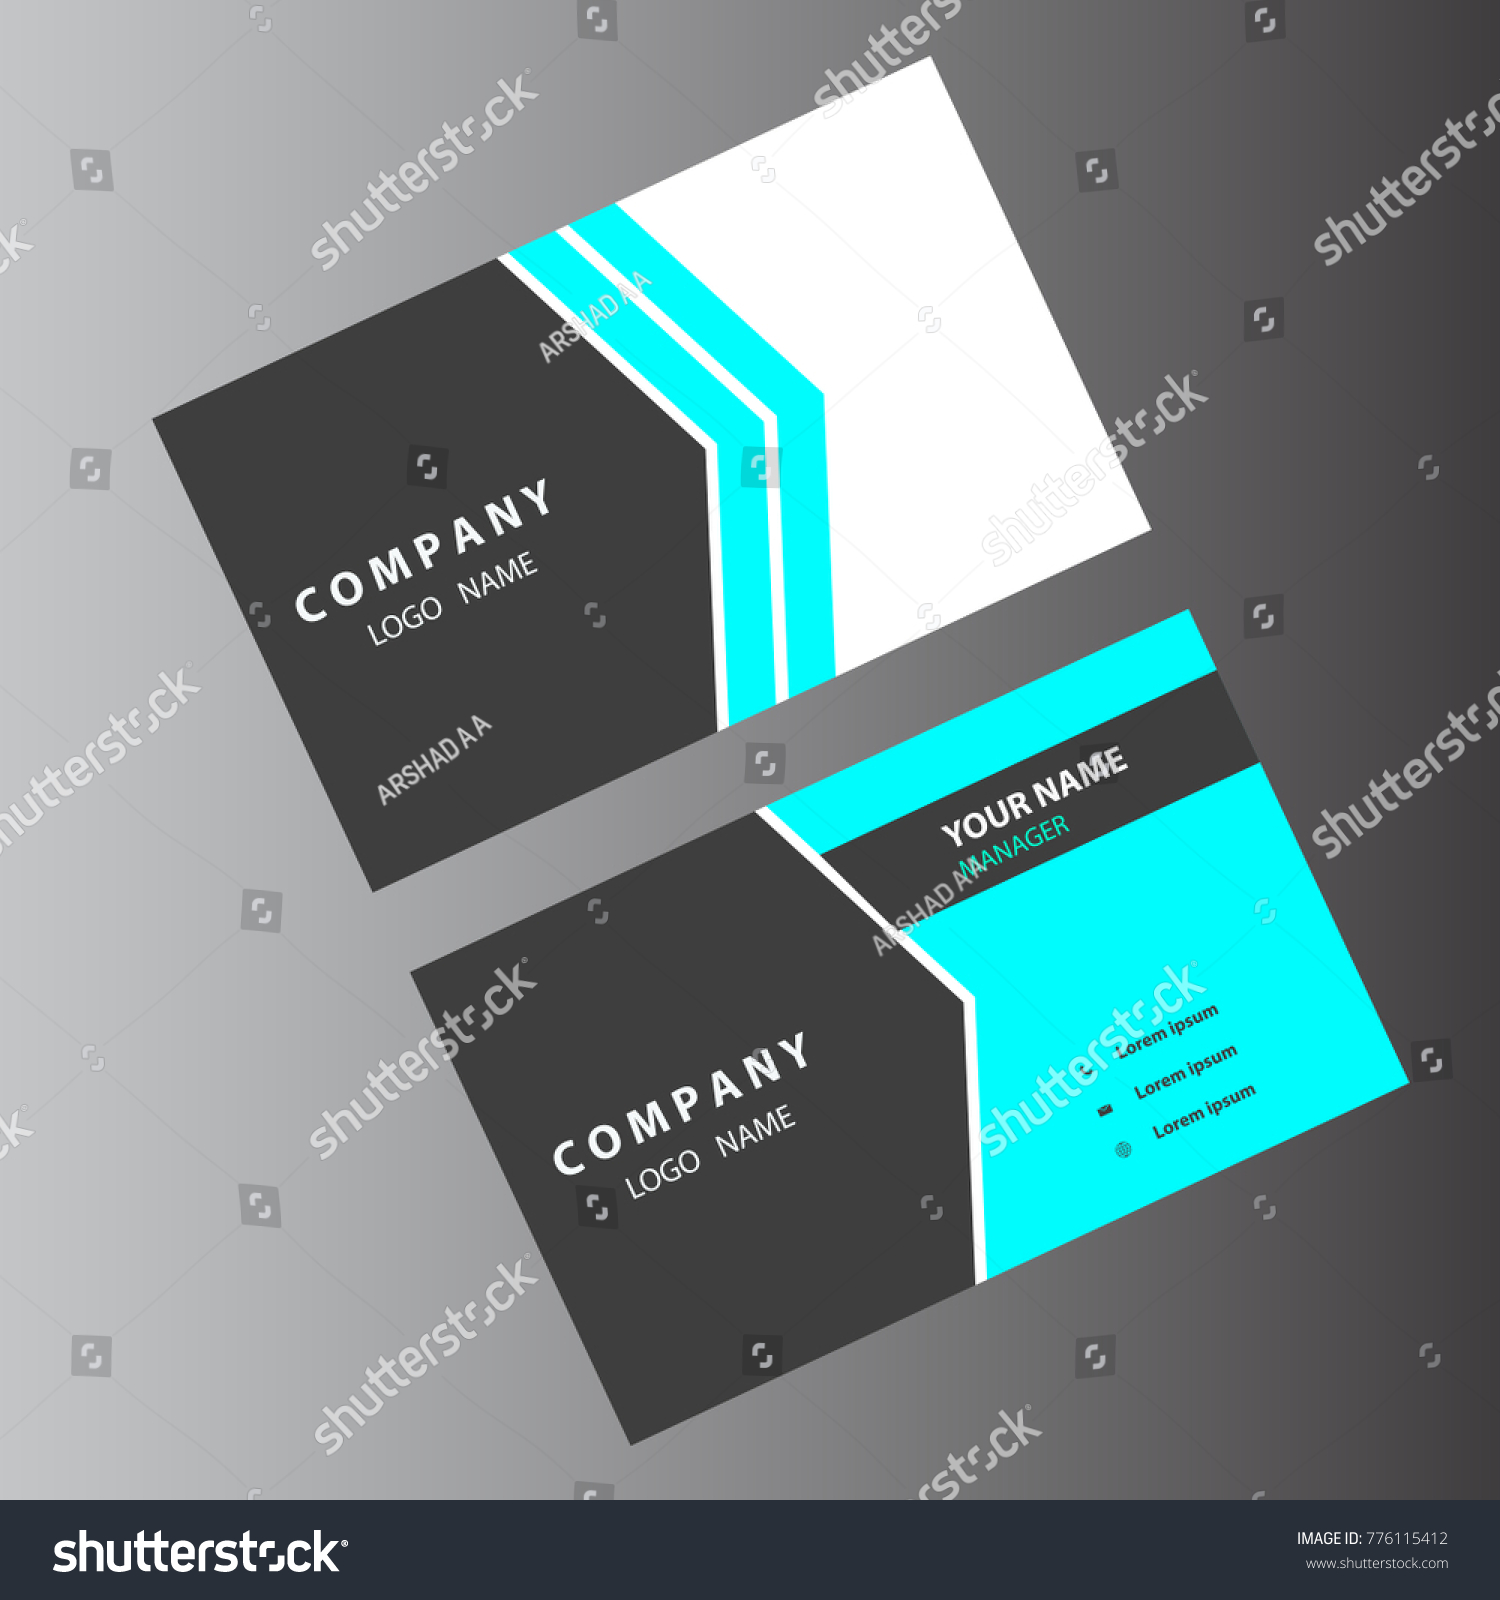 Business Card Light Colors Stock Vector 776115412 - Shutterstock